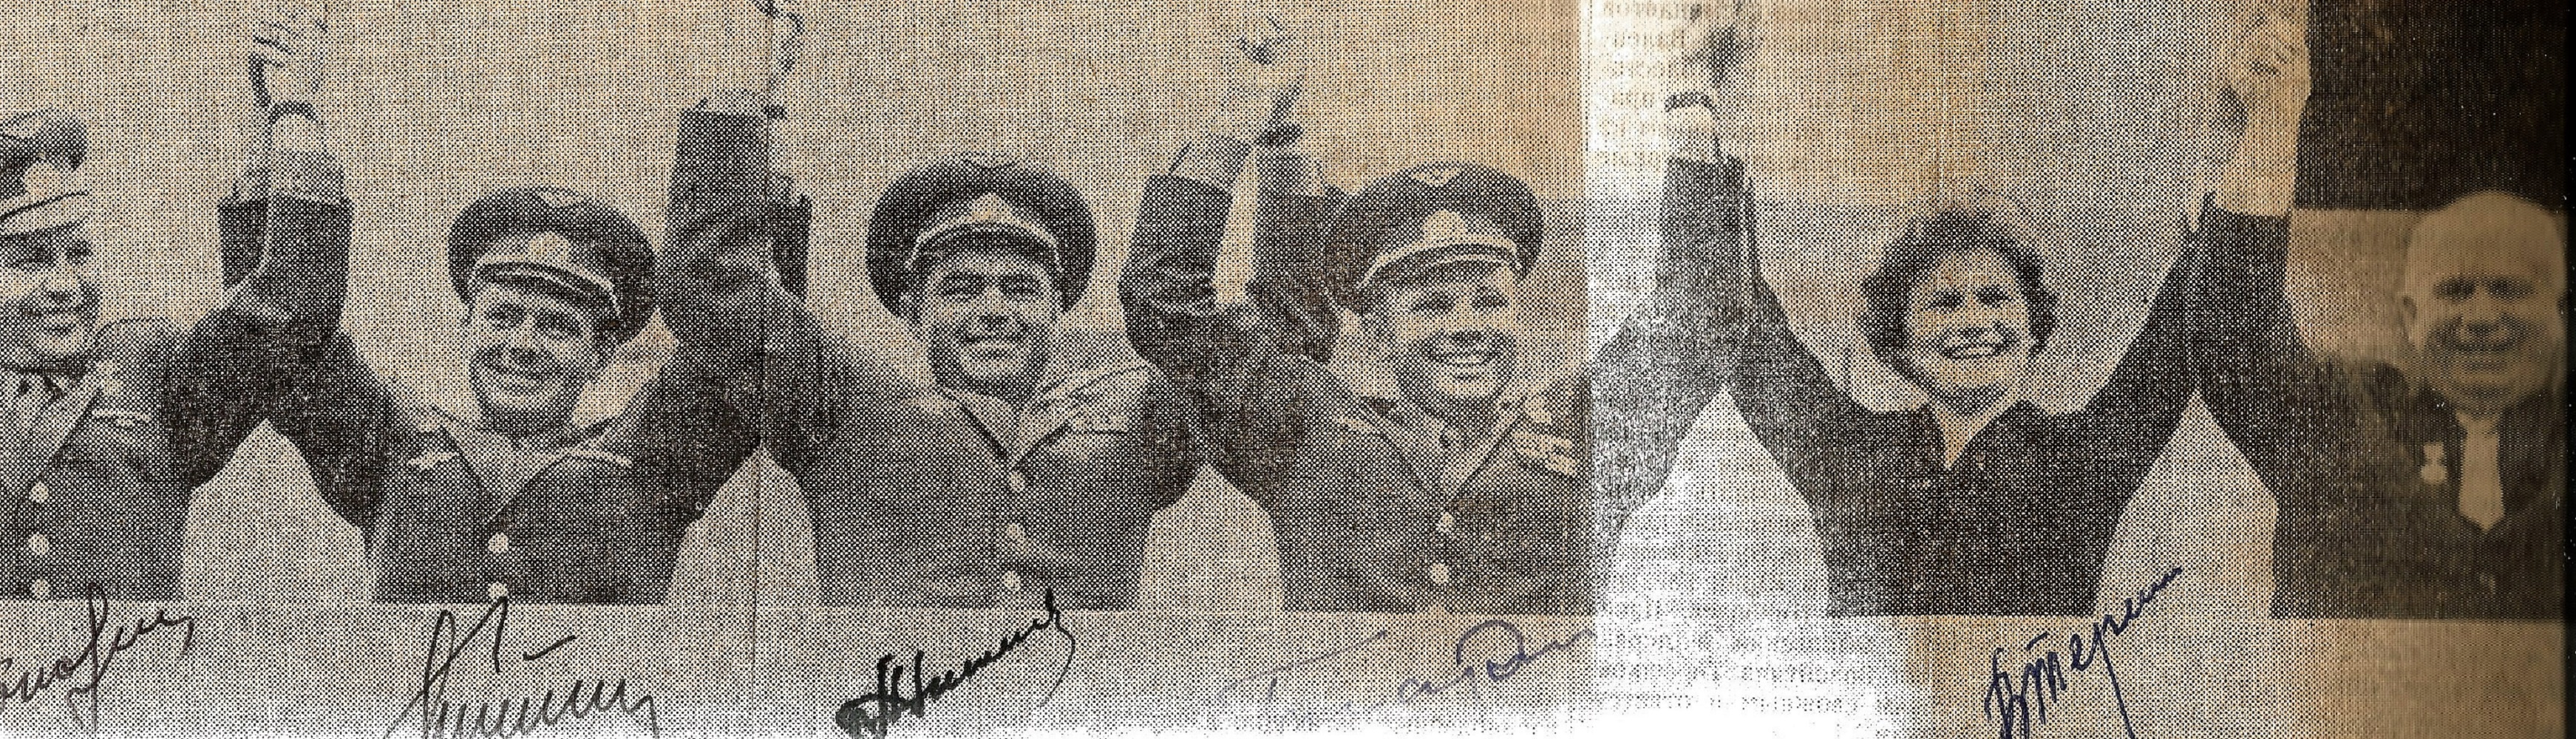 1950/60s Russian Cosmonauts multiple signed hard backed scrapbook compiled by a worker at Baikonur - Image 17 of 22